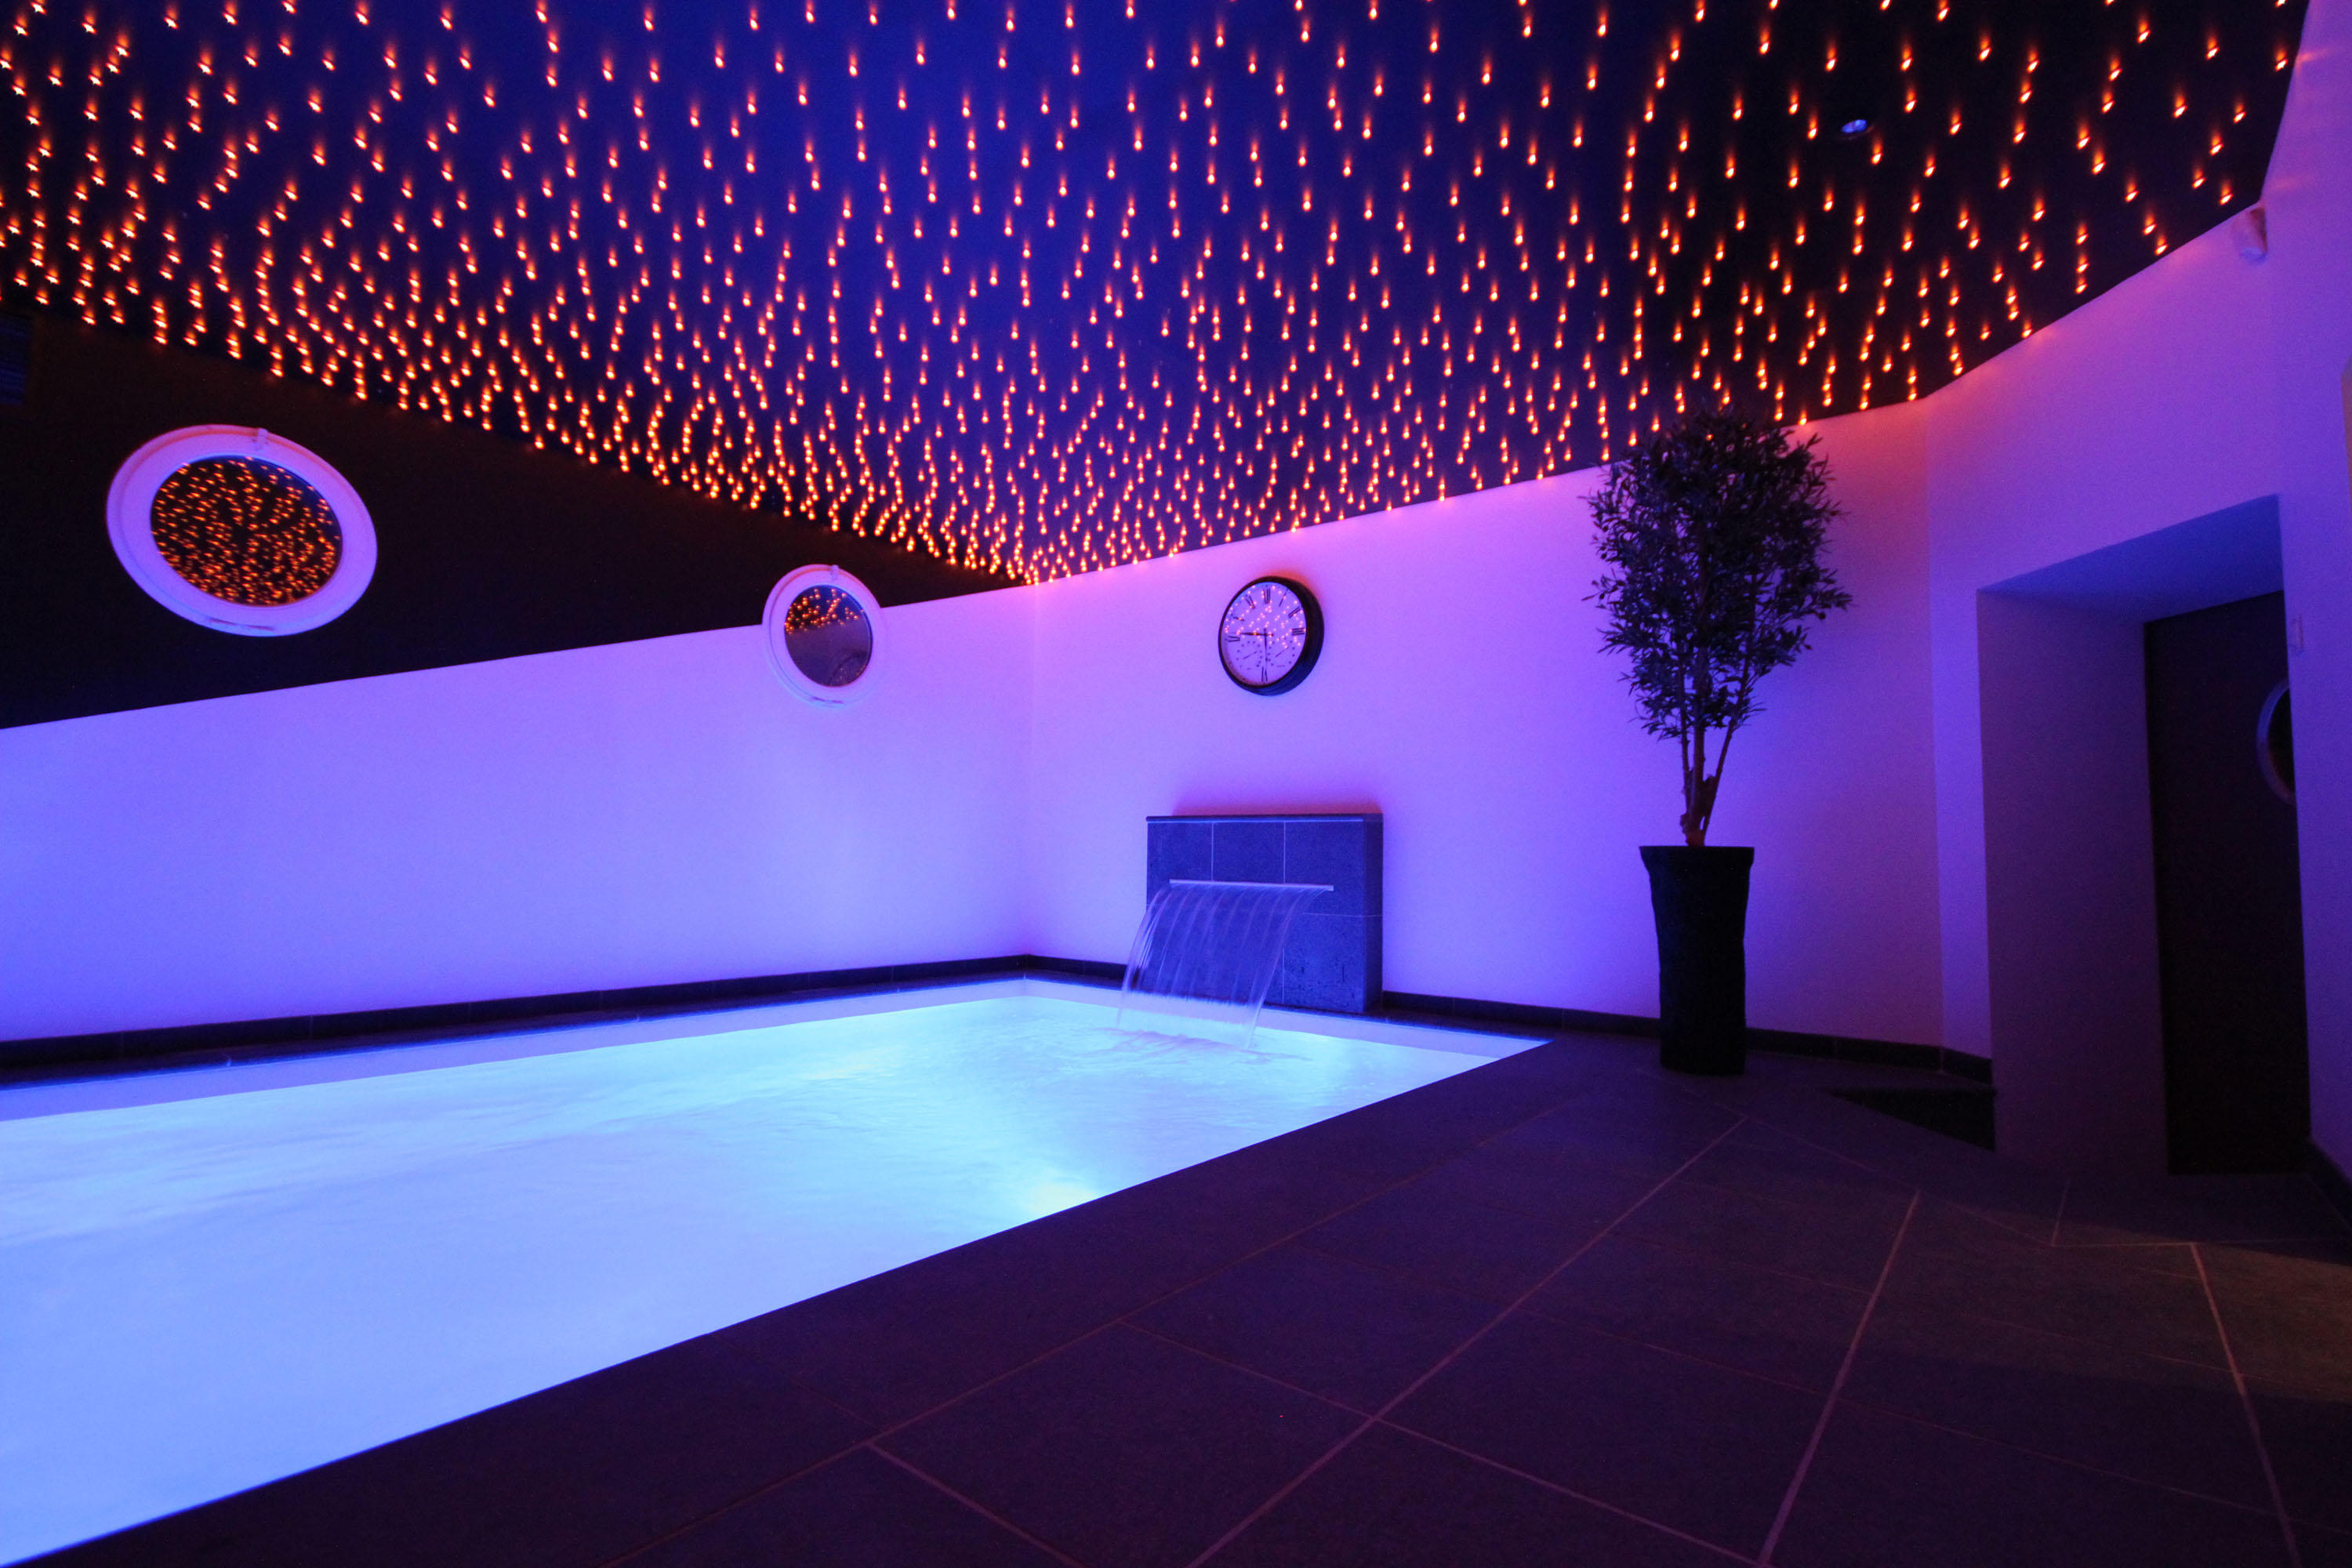 Piscine int rieure indoor pools de piscines carr bleu for Design piscine le mans